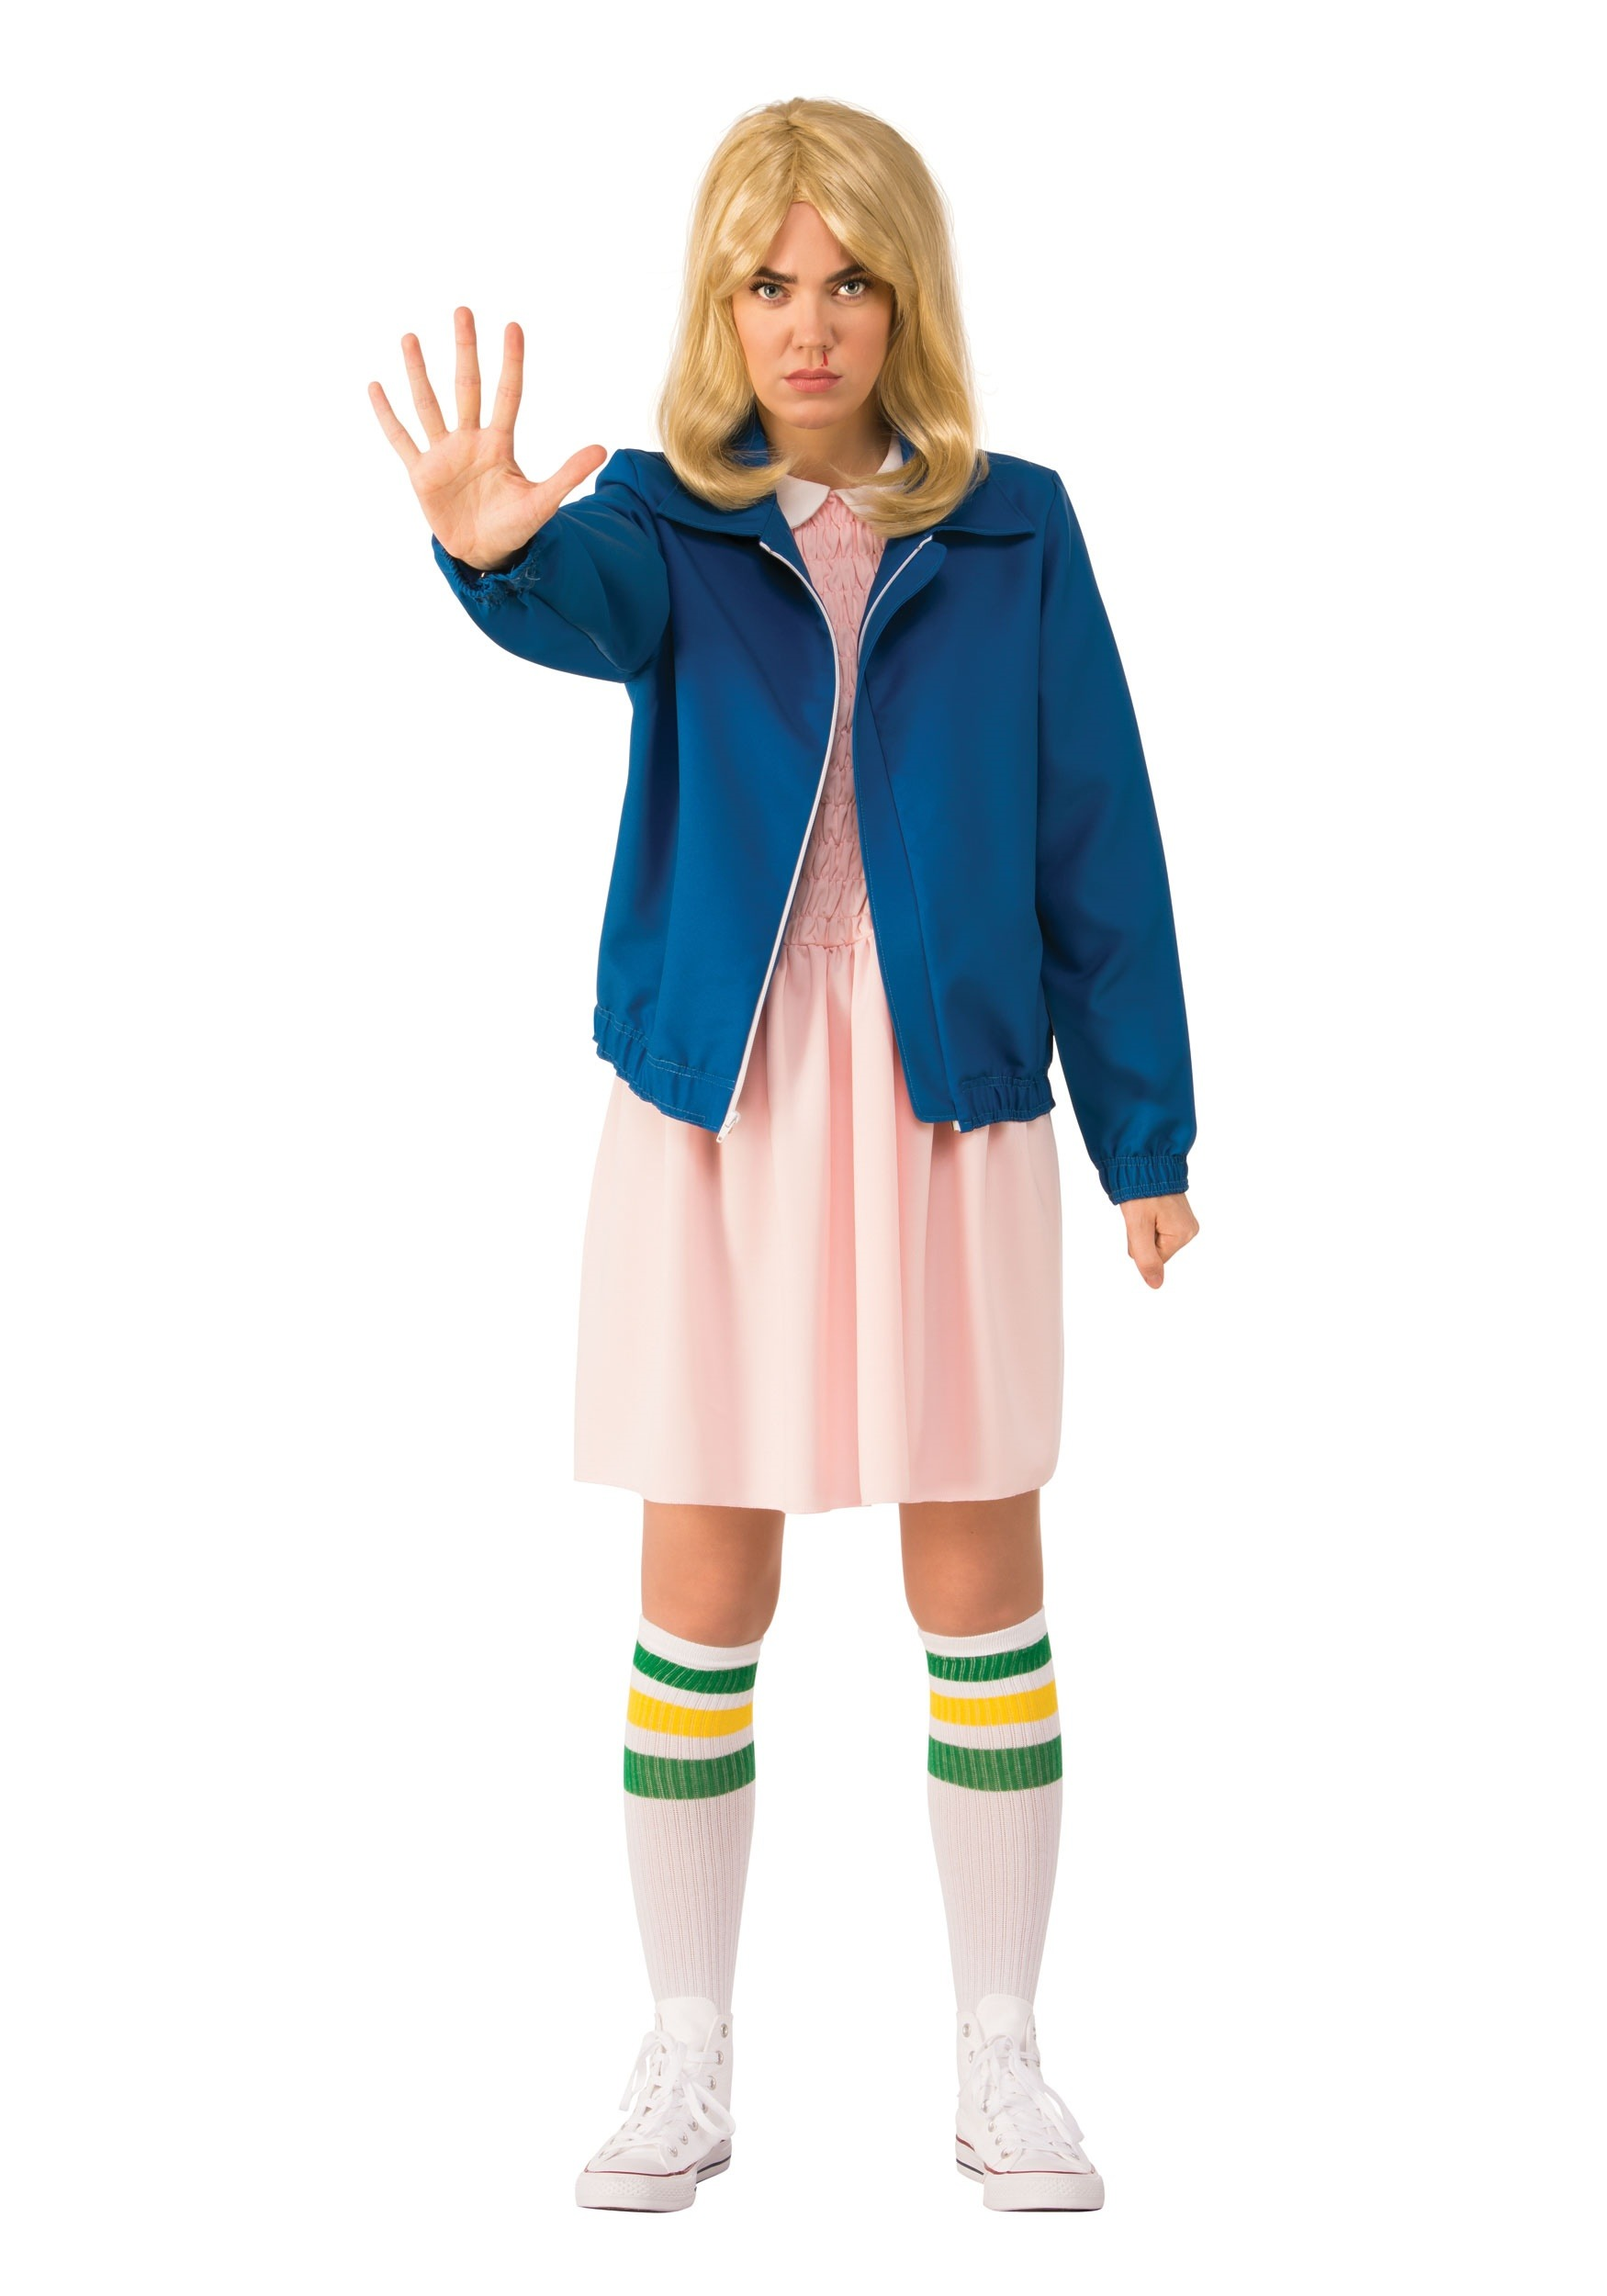 Stranger Things Eleven EL Dress Outfit Halloween Cosplay Costume Women Xmas Gift